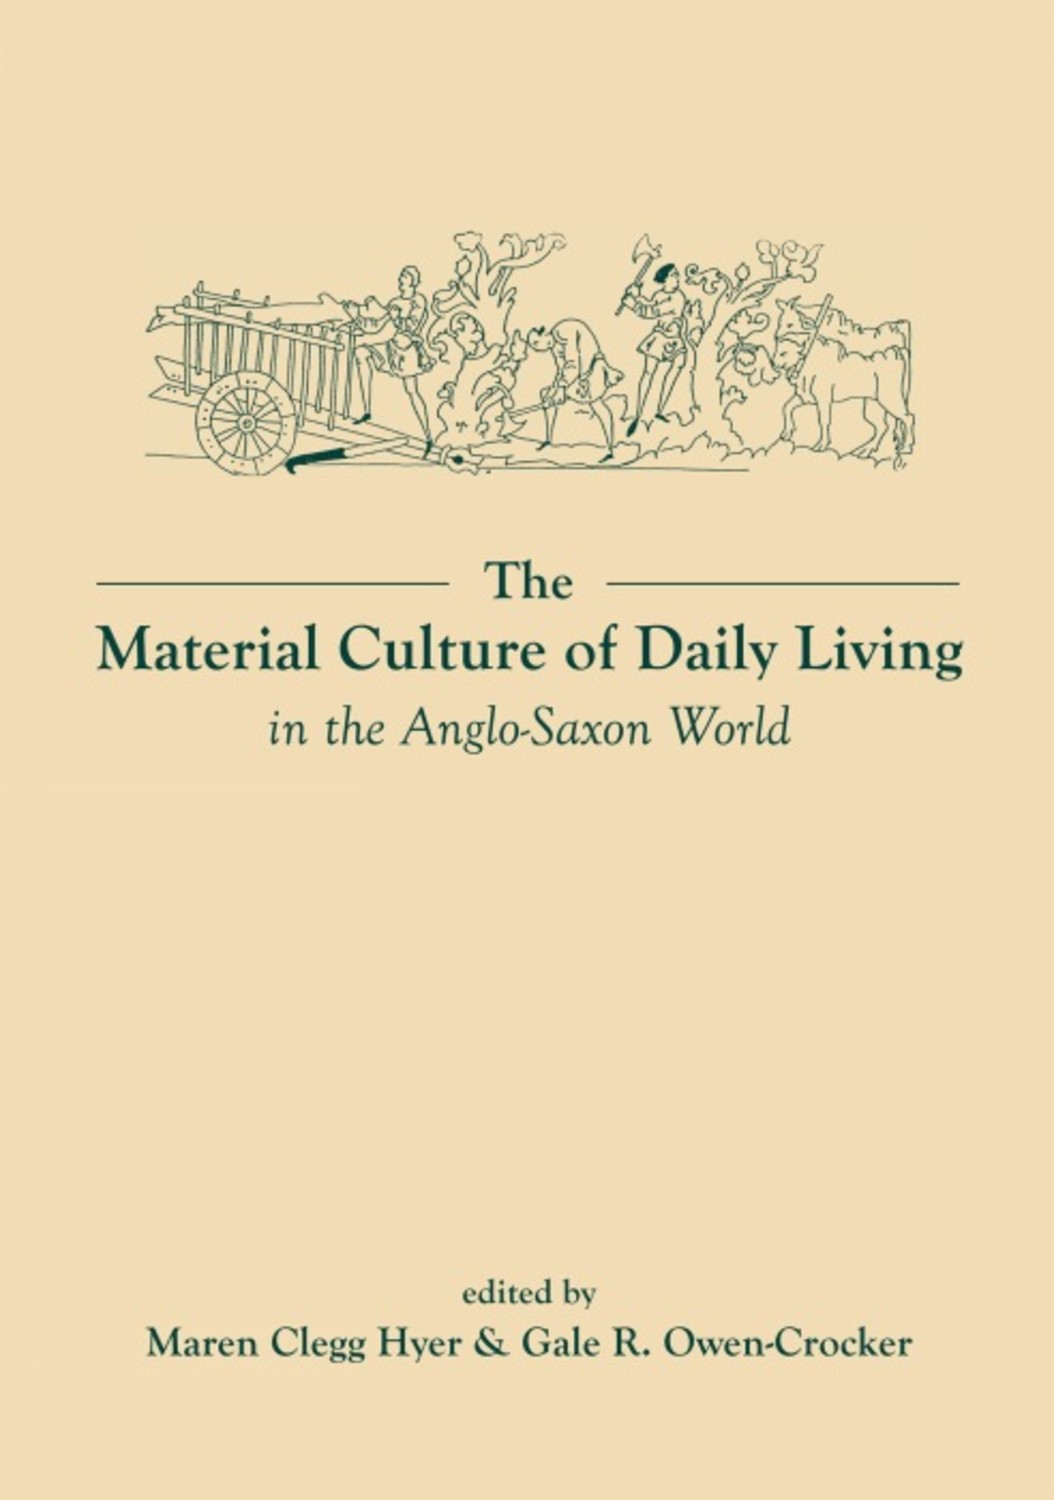 The Material Culture of Daily Living in the Anglo-Saxon World